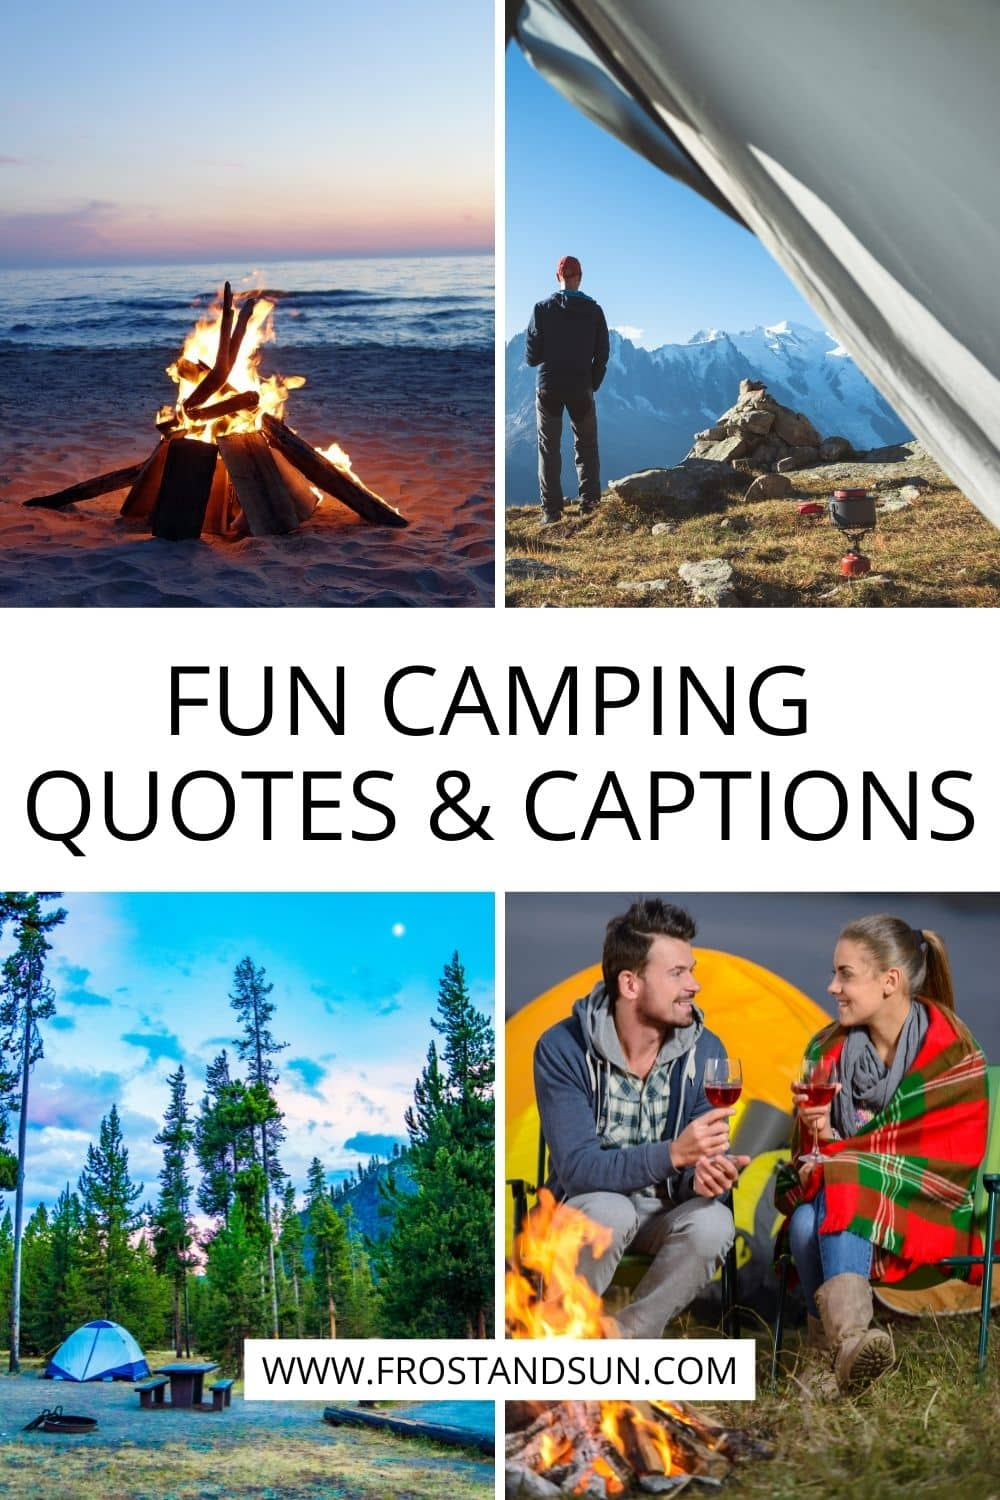 Fun Camping Quotes & Captions for Instagram